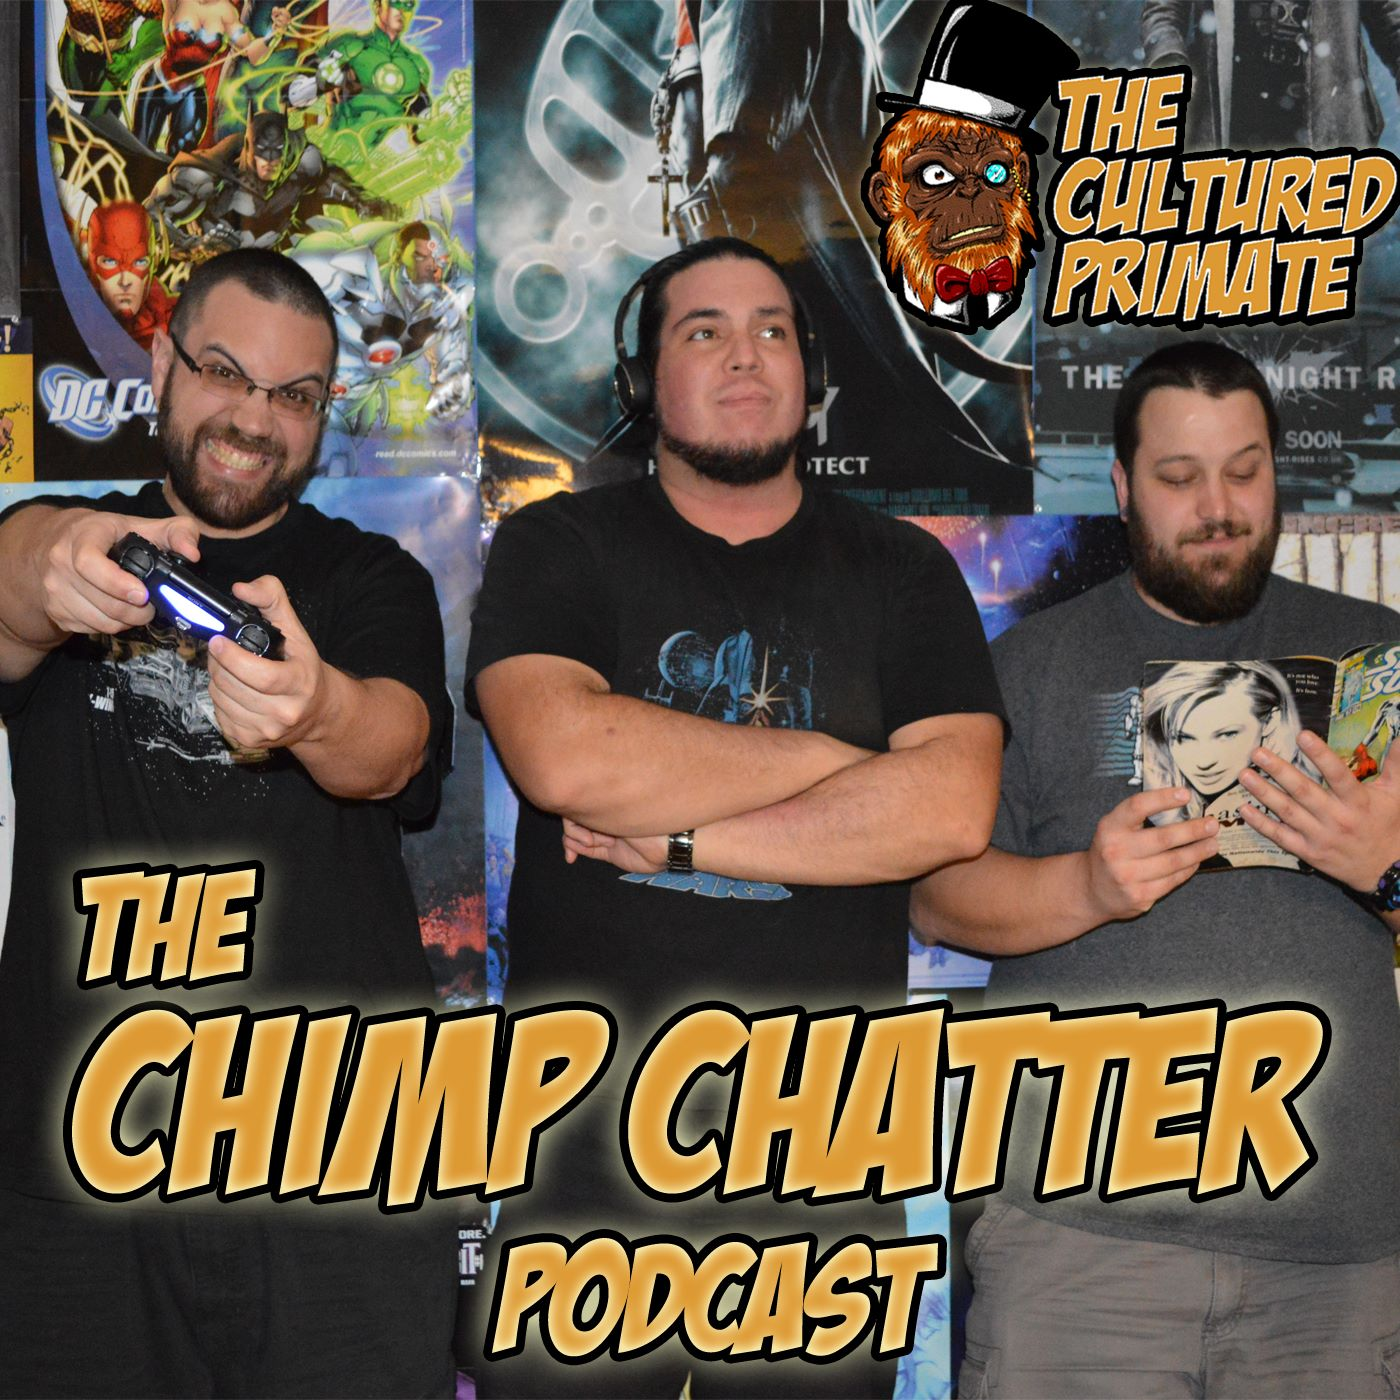 Chimp Chatter Podcast